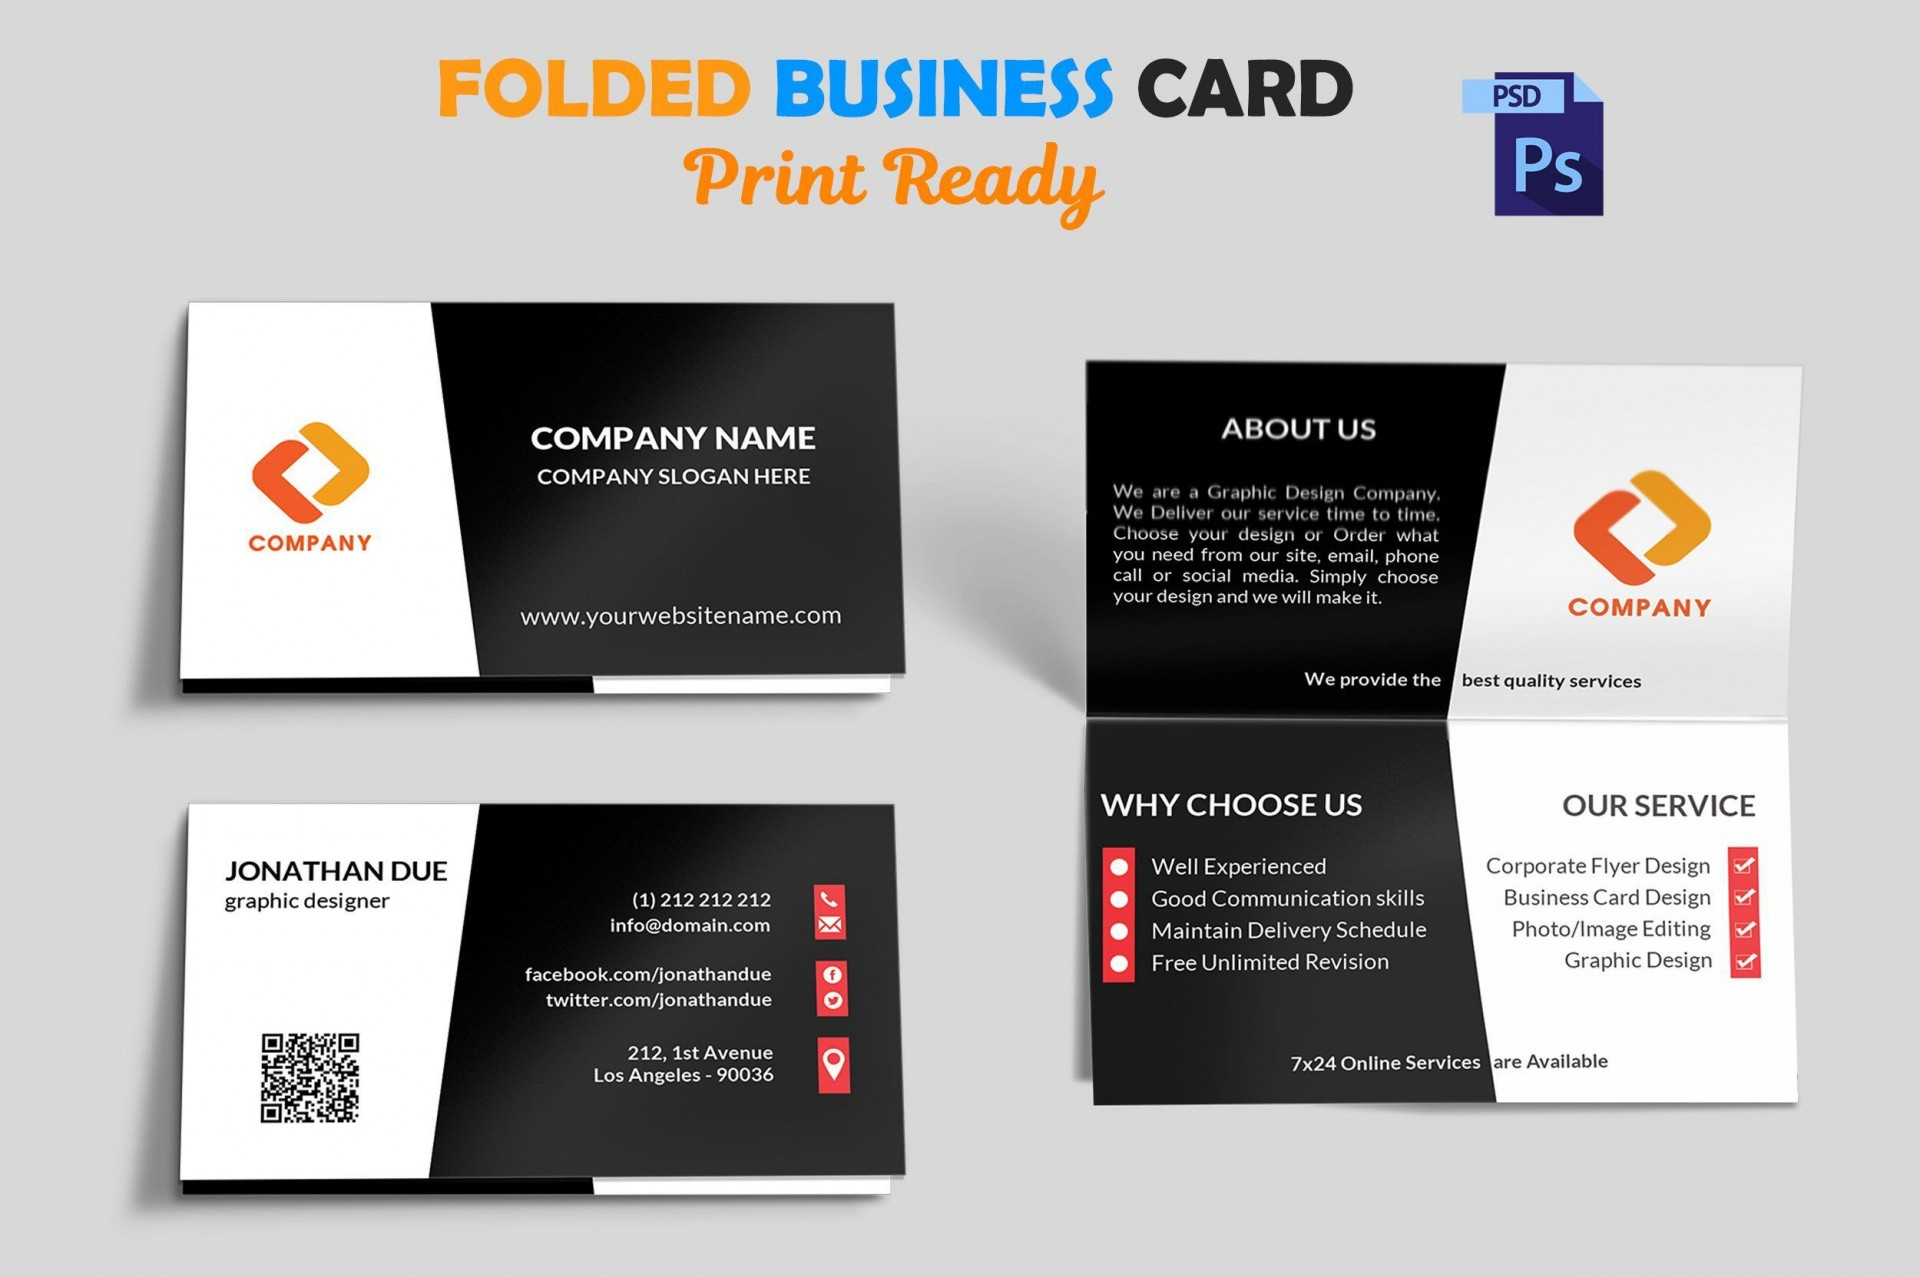 001 Exceptional Folded Busines Card Template Concept  Templates Publisher Free Download Tri Fold Word1920